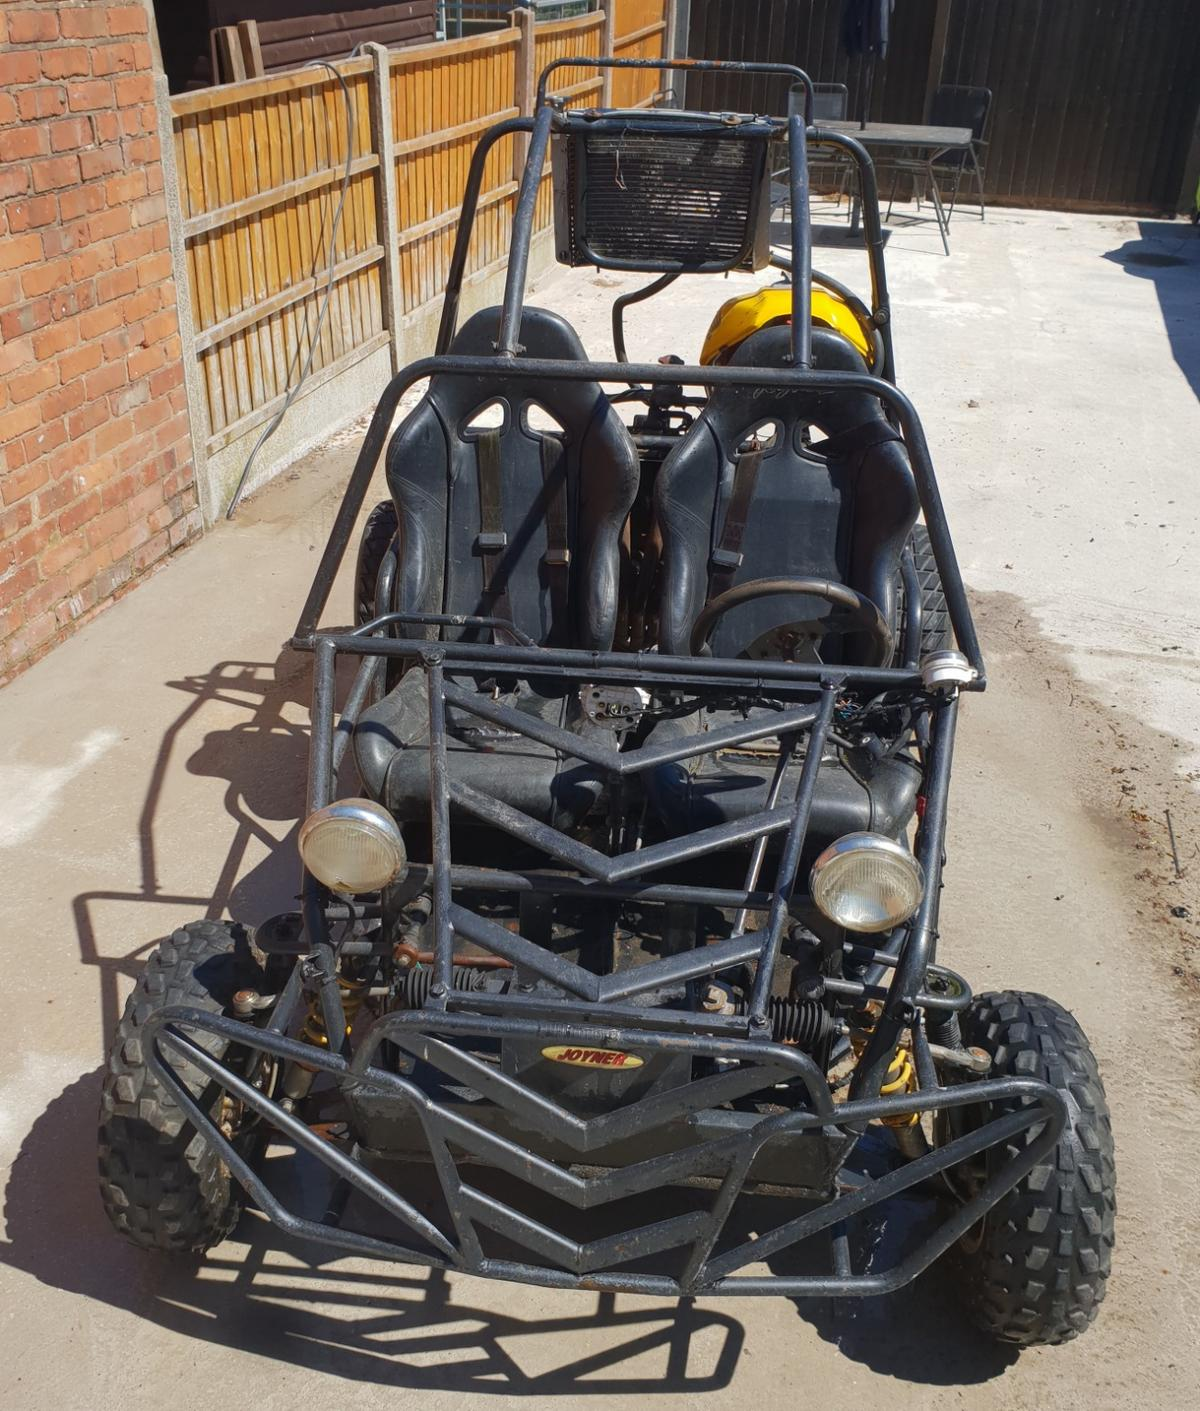 off road buggy for sale in FY4 Fylde for £200 00 for sale